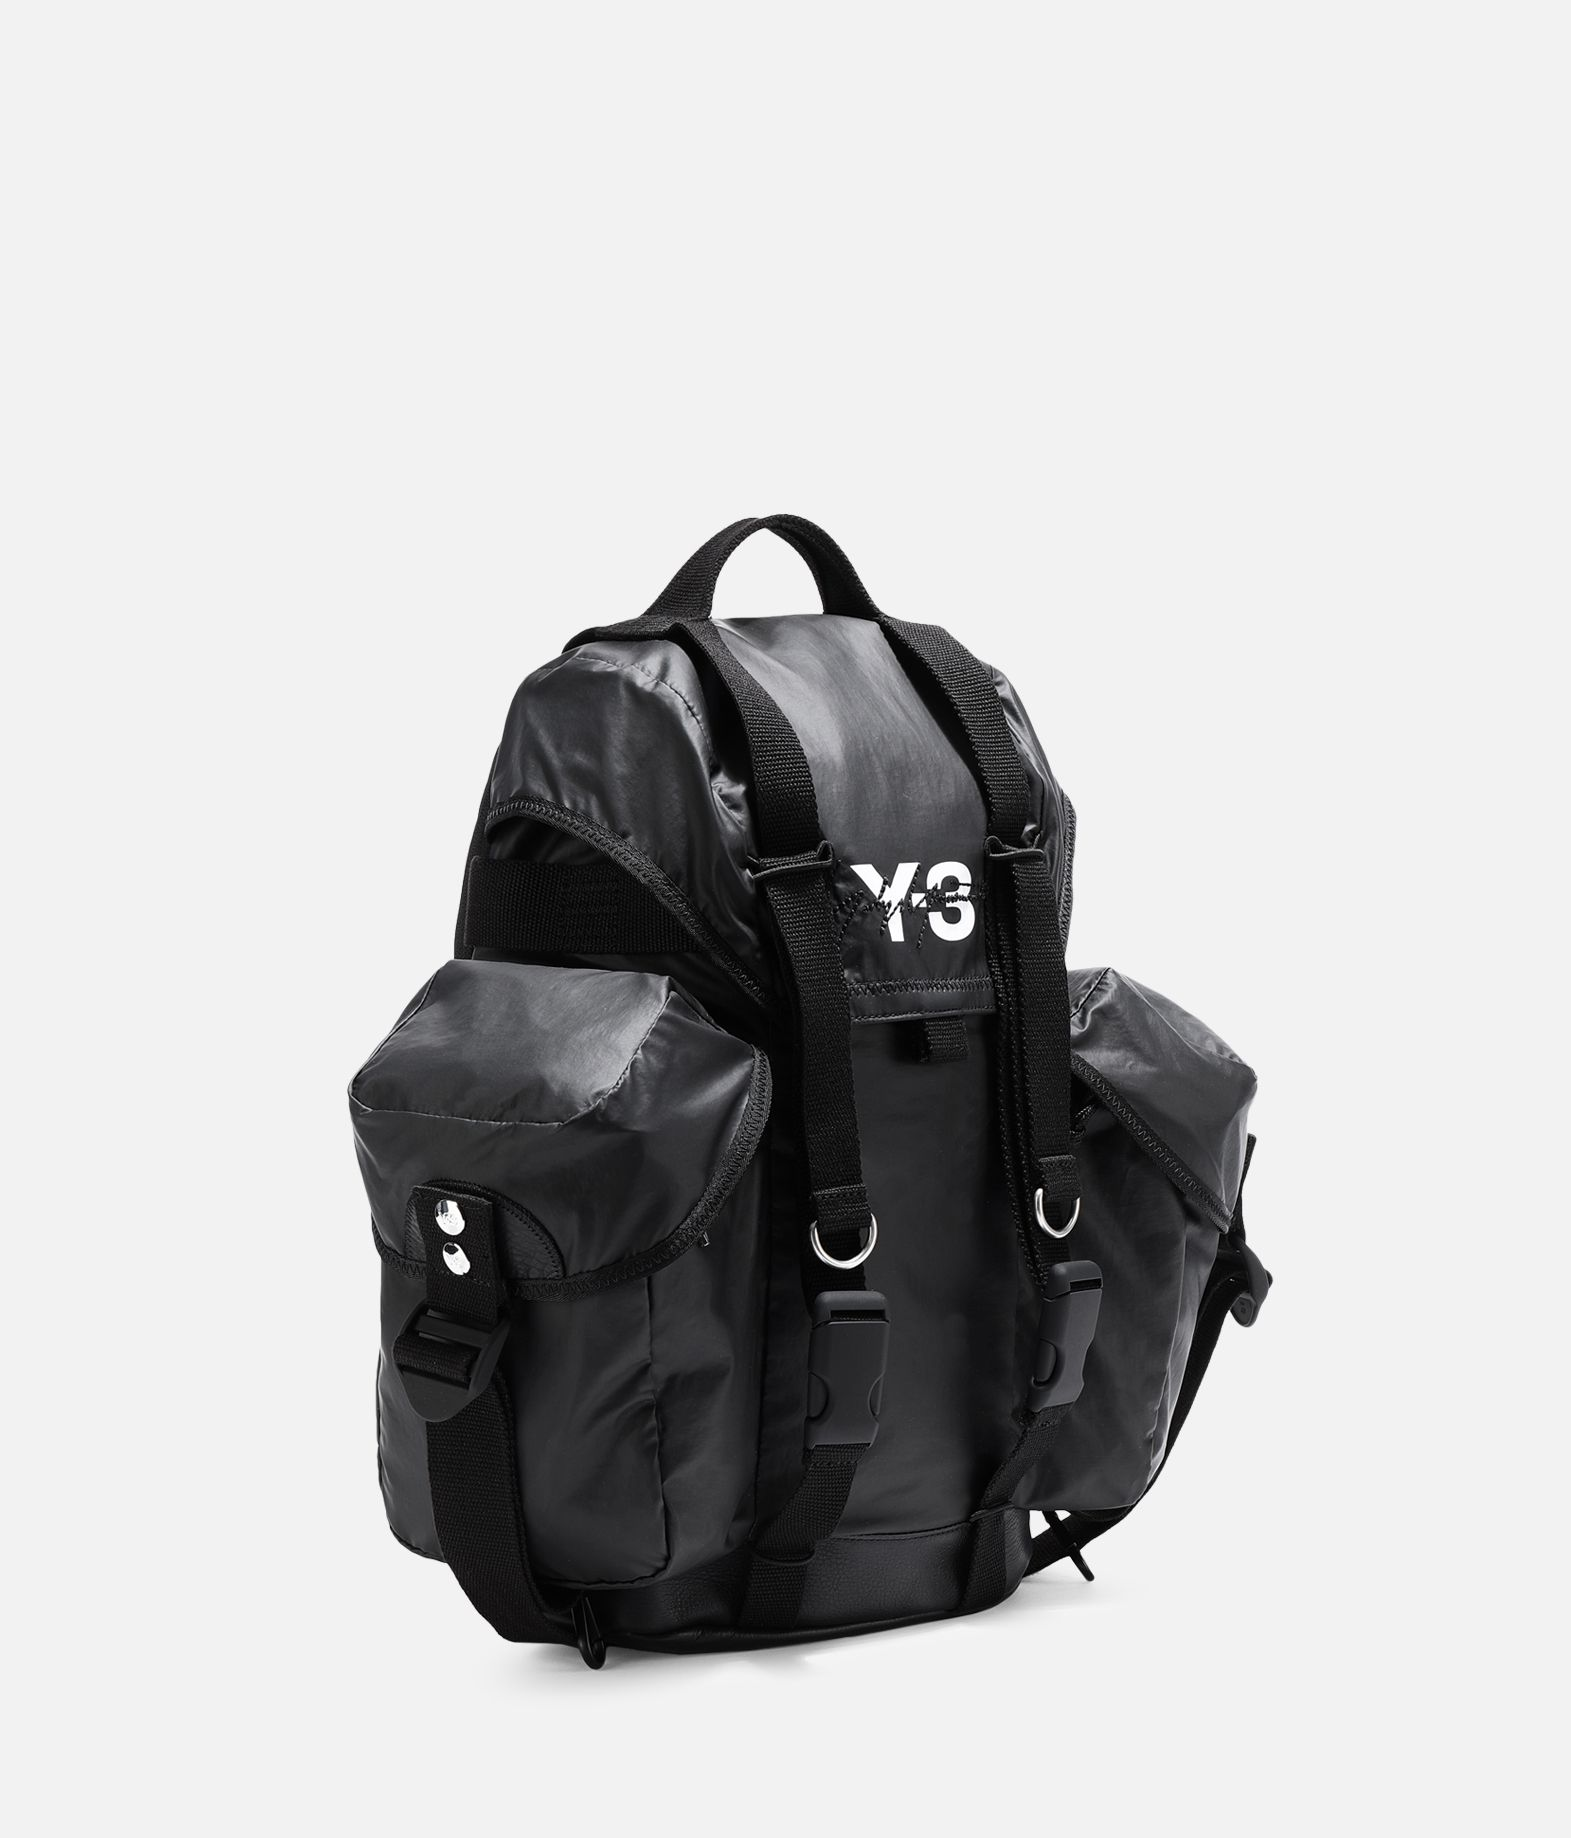 Y-3 Y-3 XS Utility Bag Backpack E r